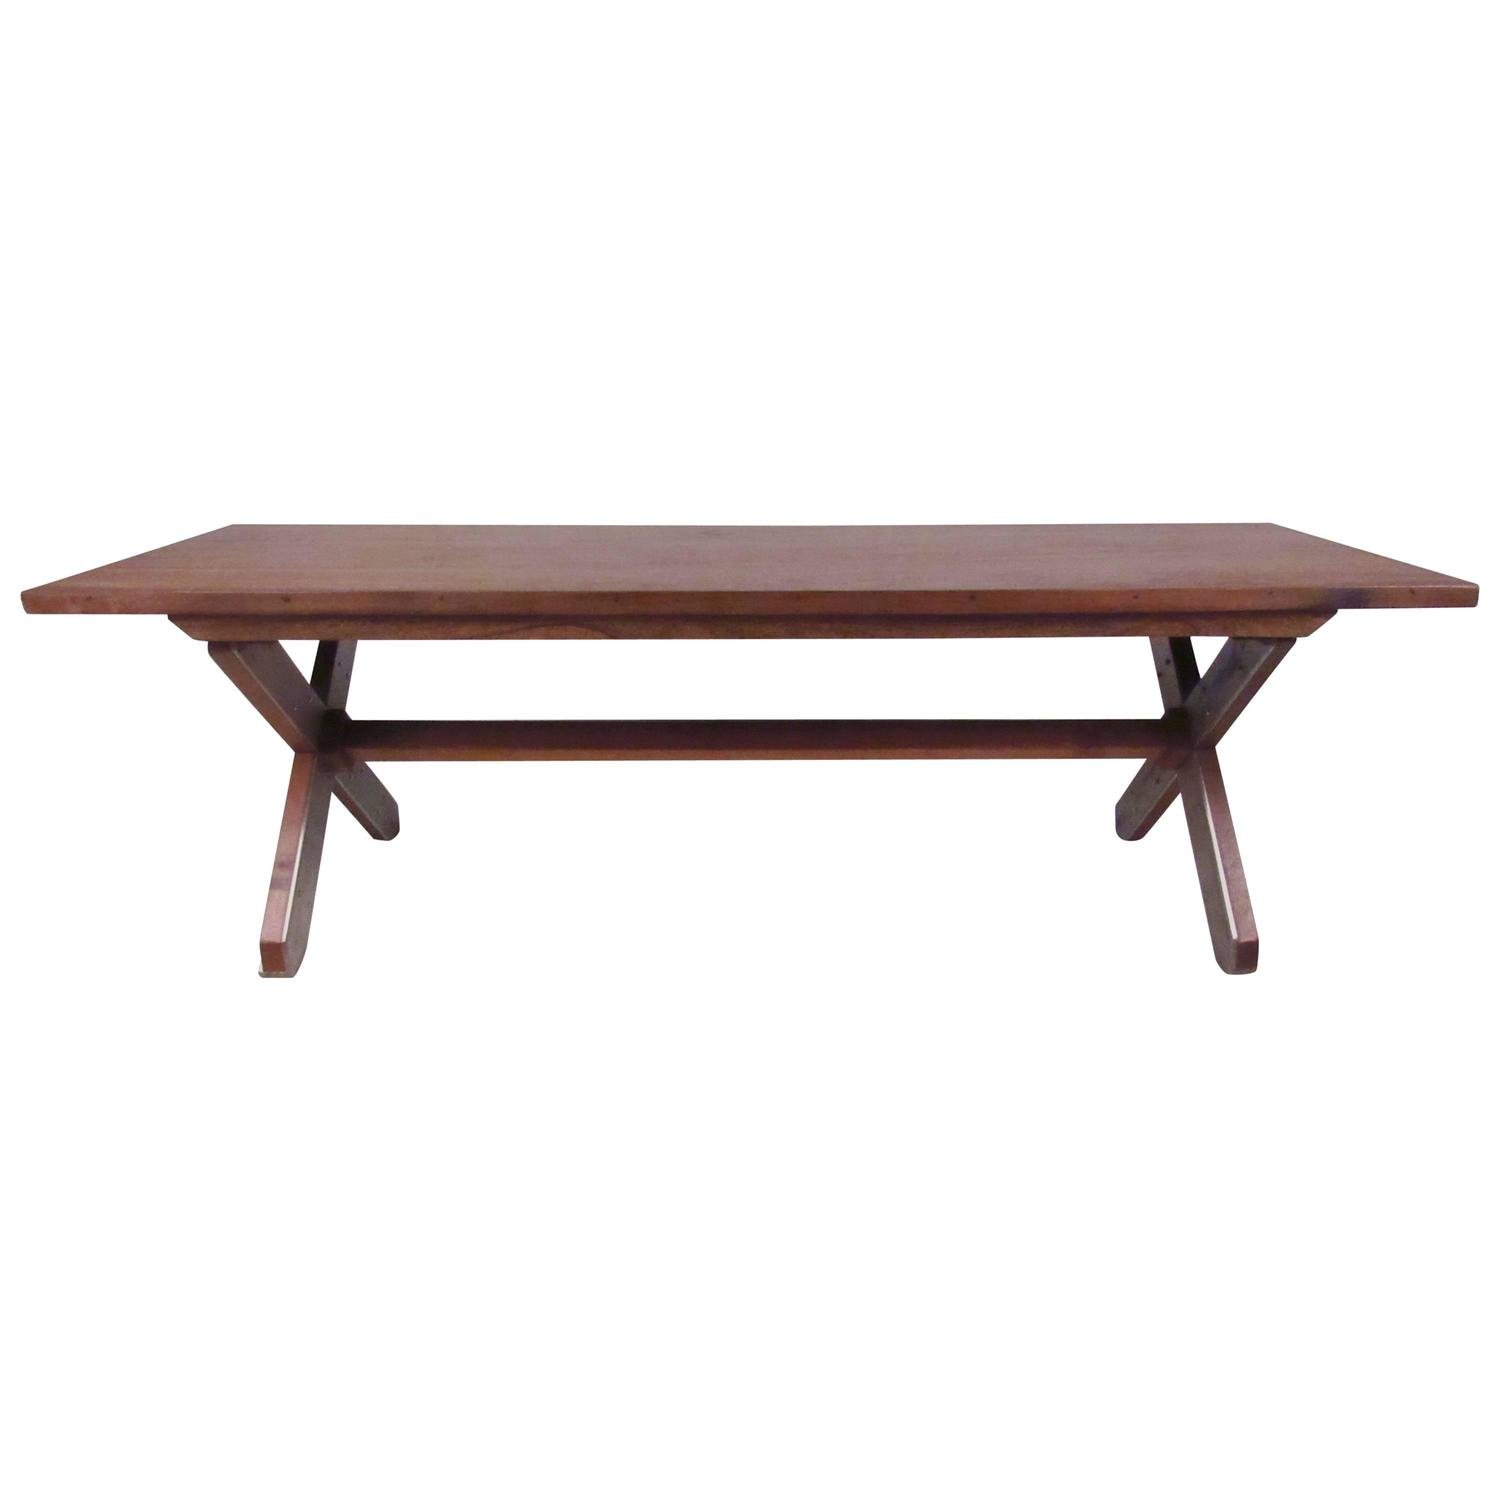 Unique farm style coffee table in rosewood at 1stdibs Farm style coffee tables